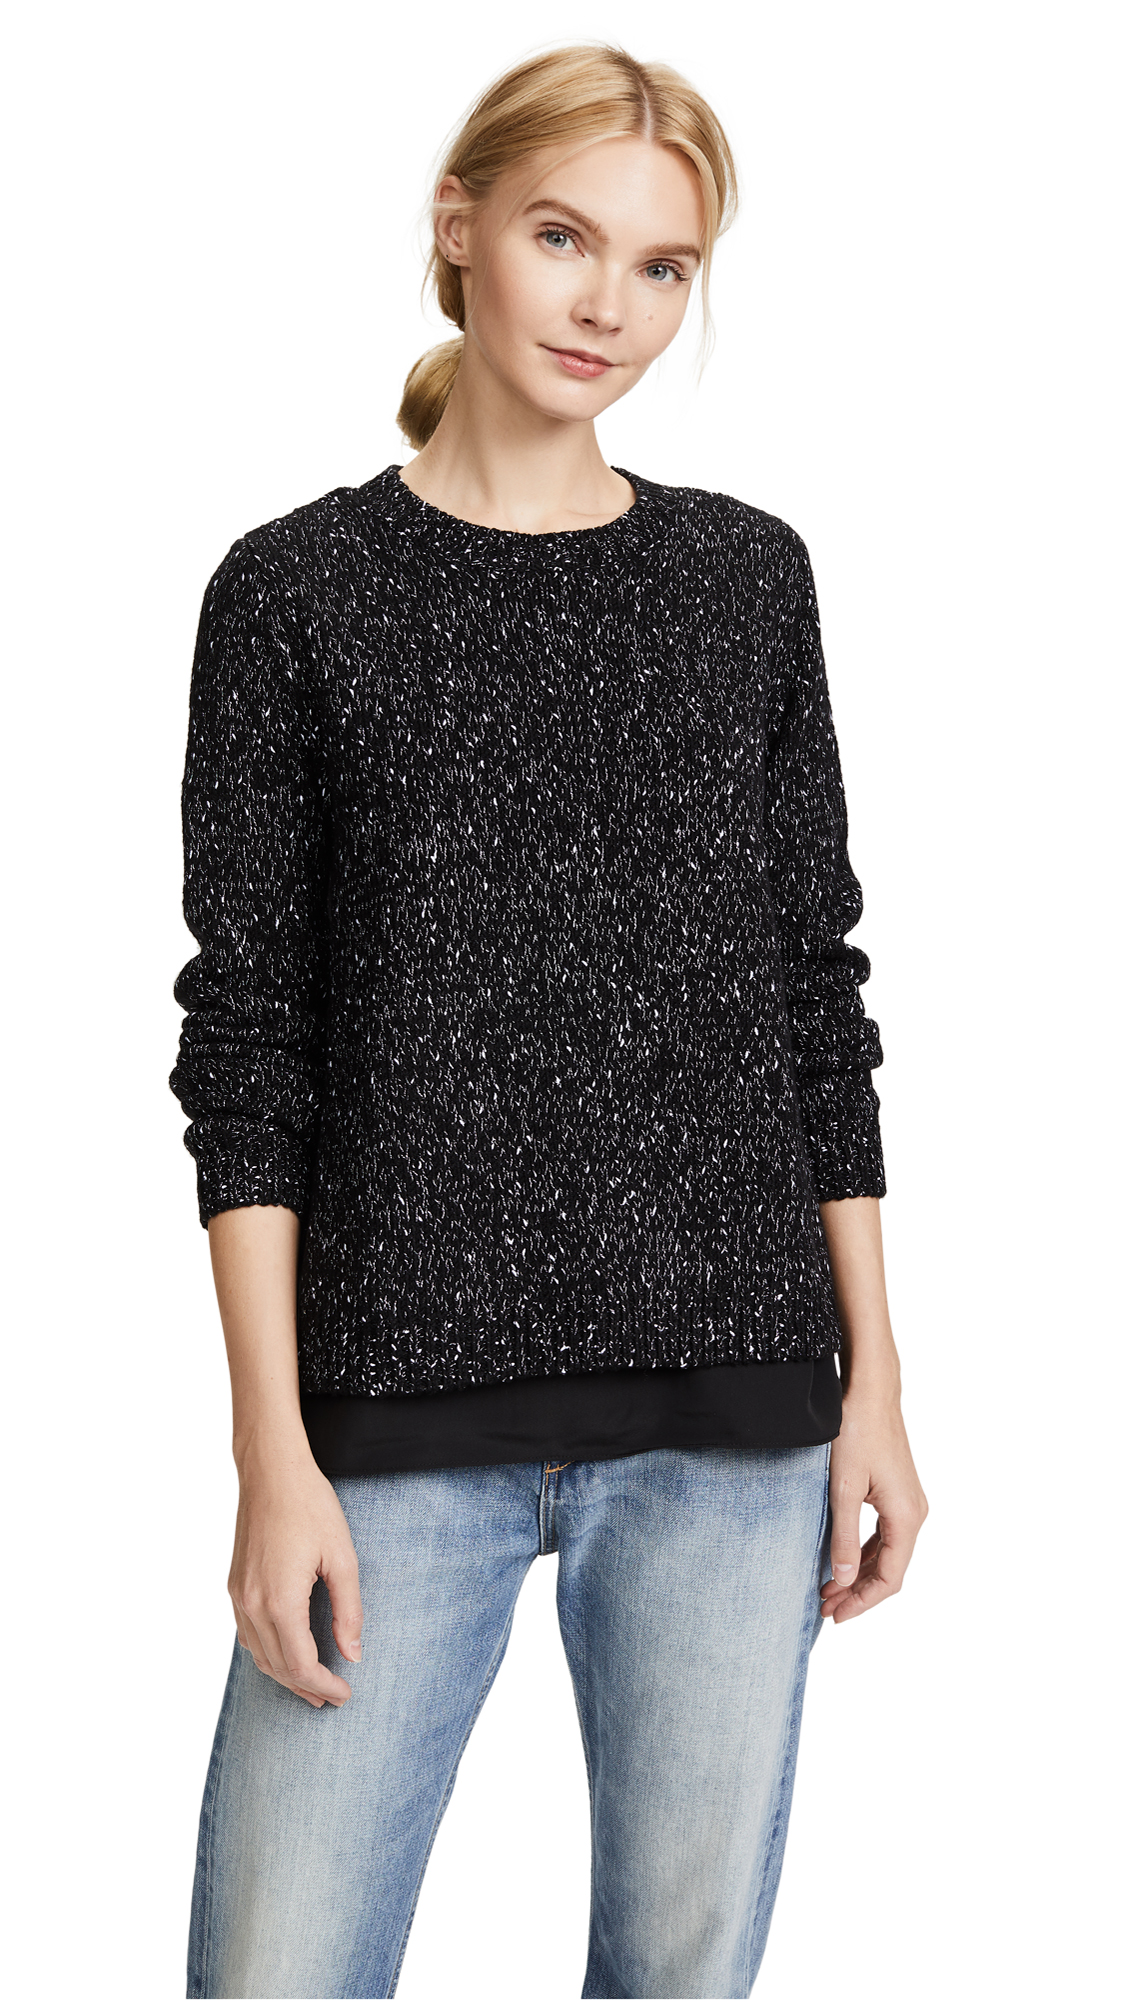 Club Monaco Kaelane Sweater - Black Tweed